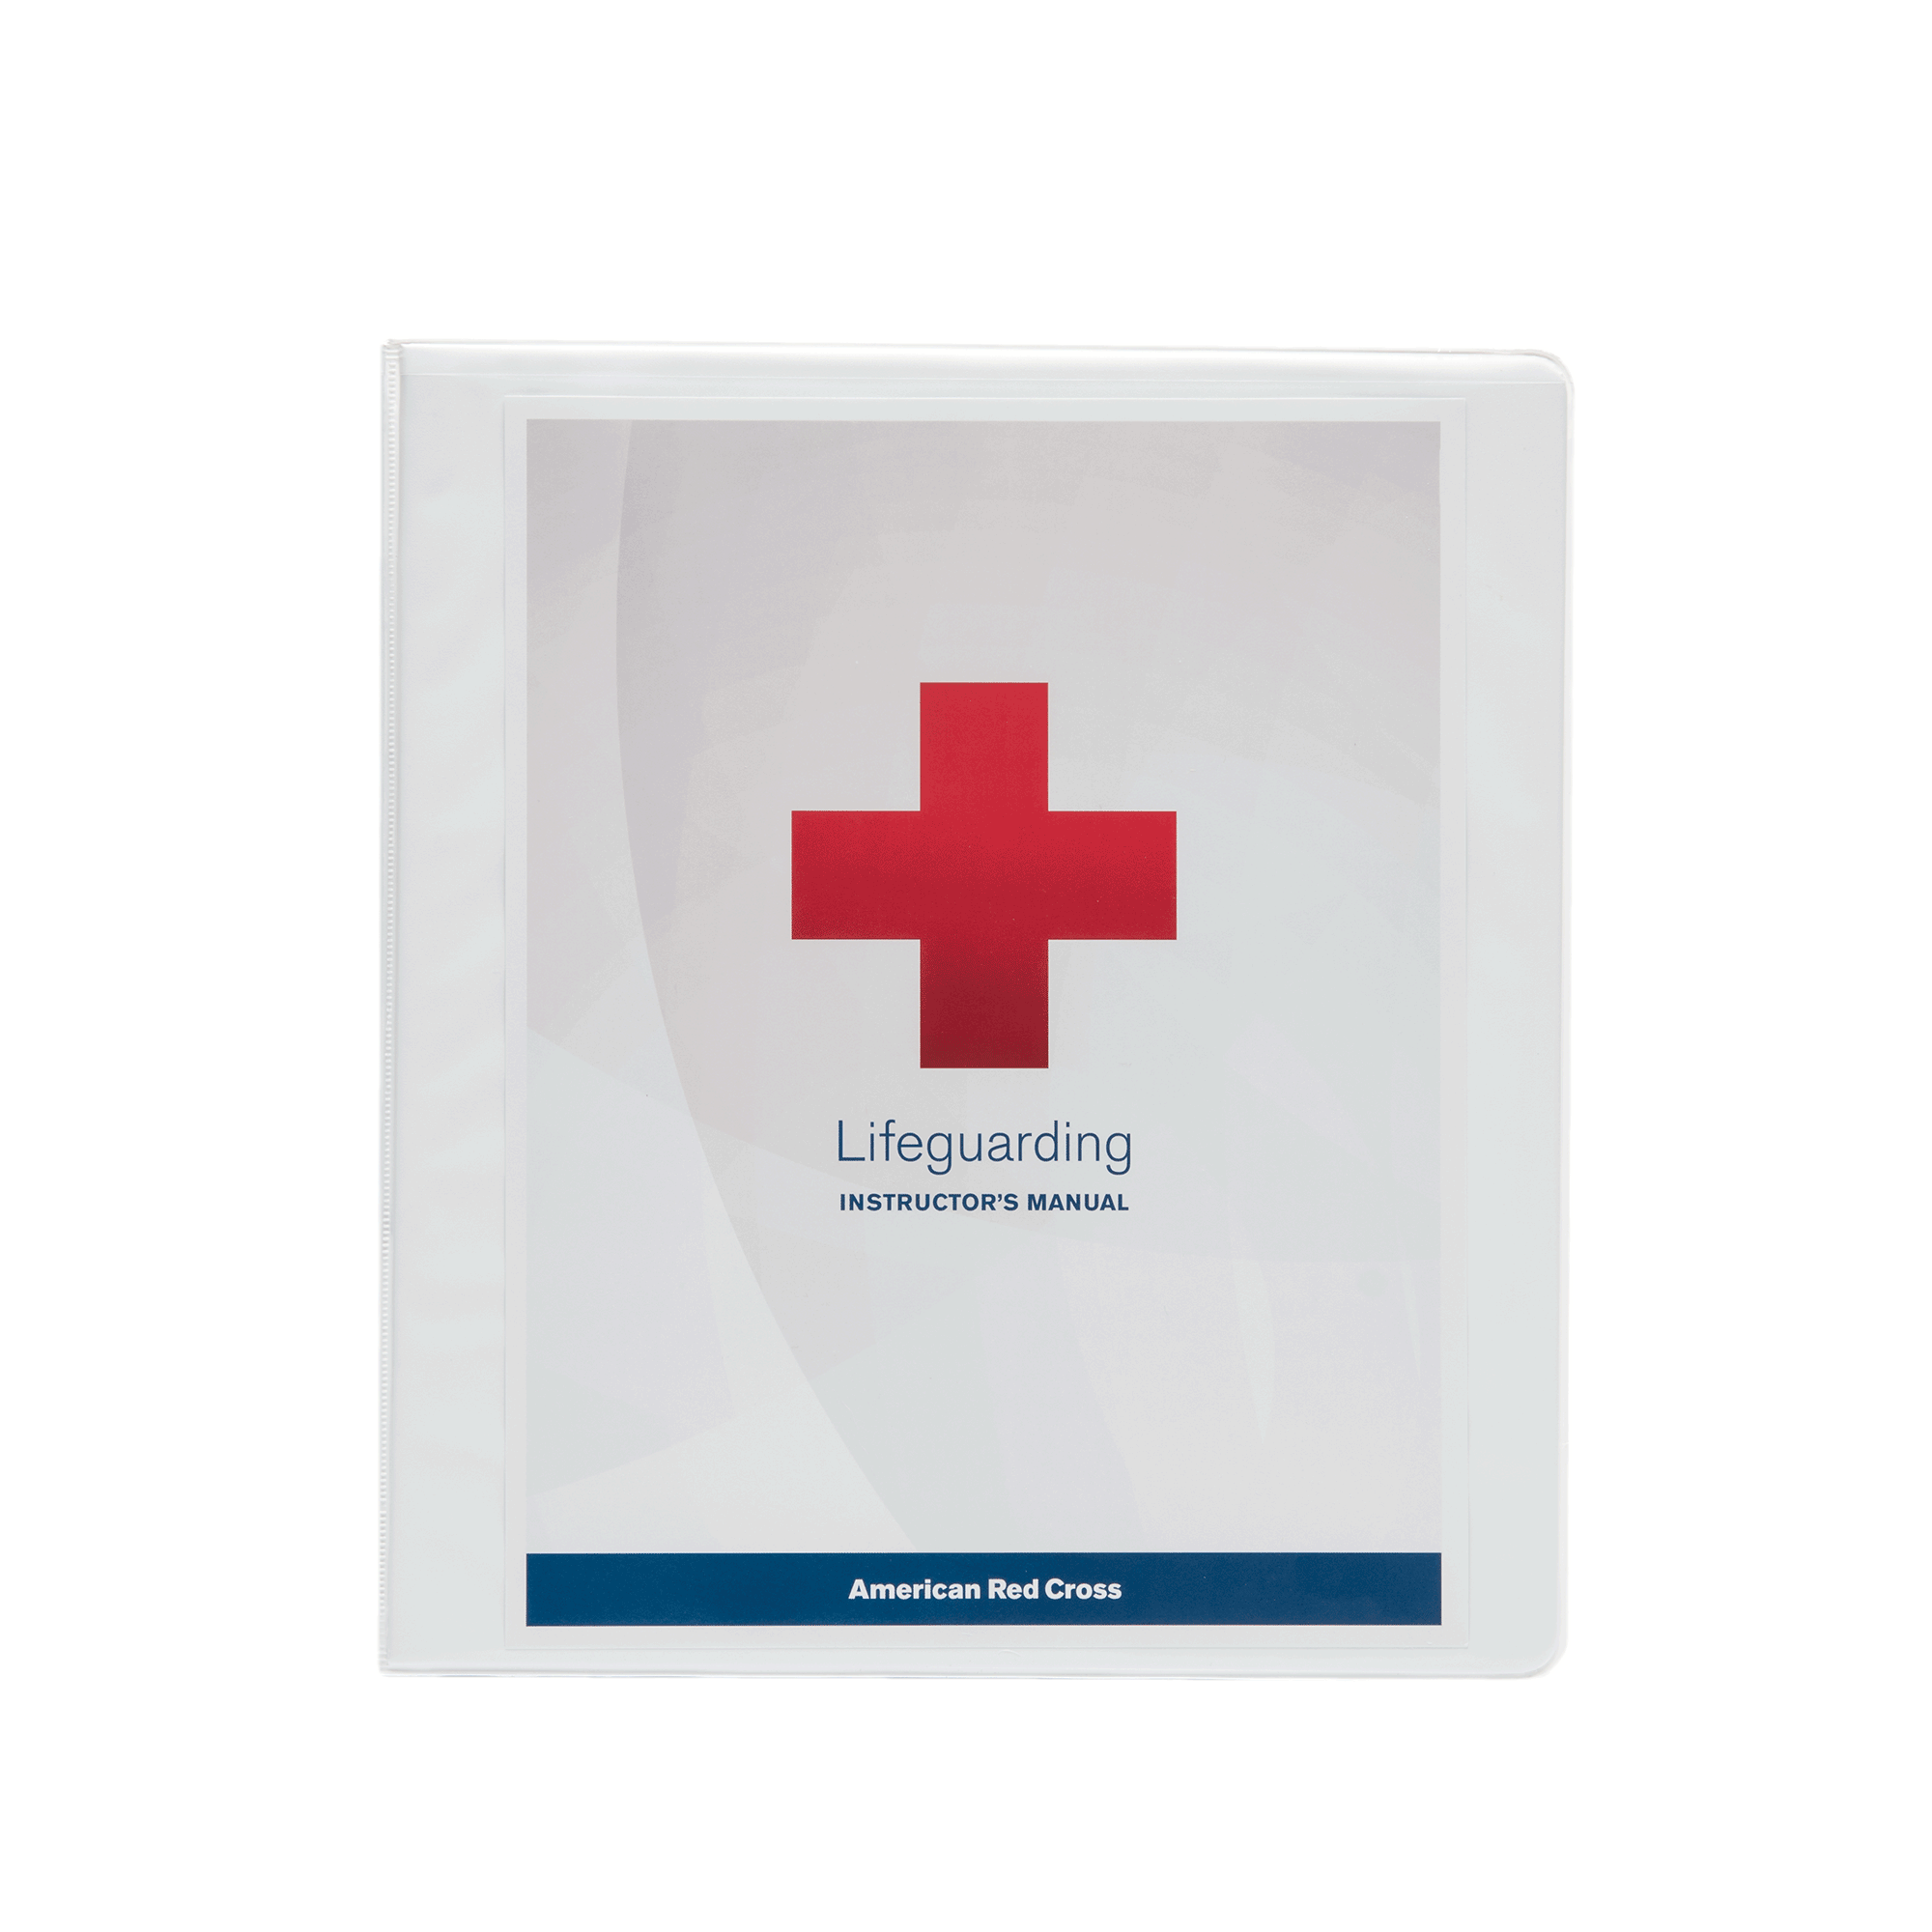 lifeguarding instructor s manual red cross store rh redcross org red cross lifeguard manual online red cross lifeguard manual 2018